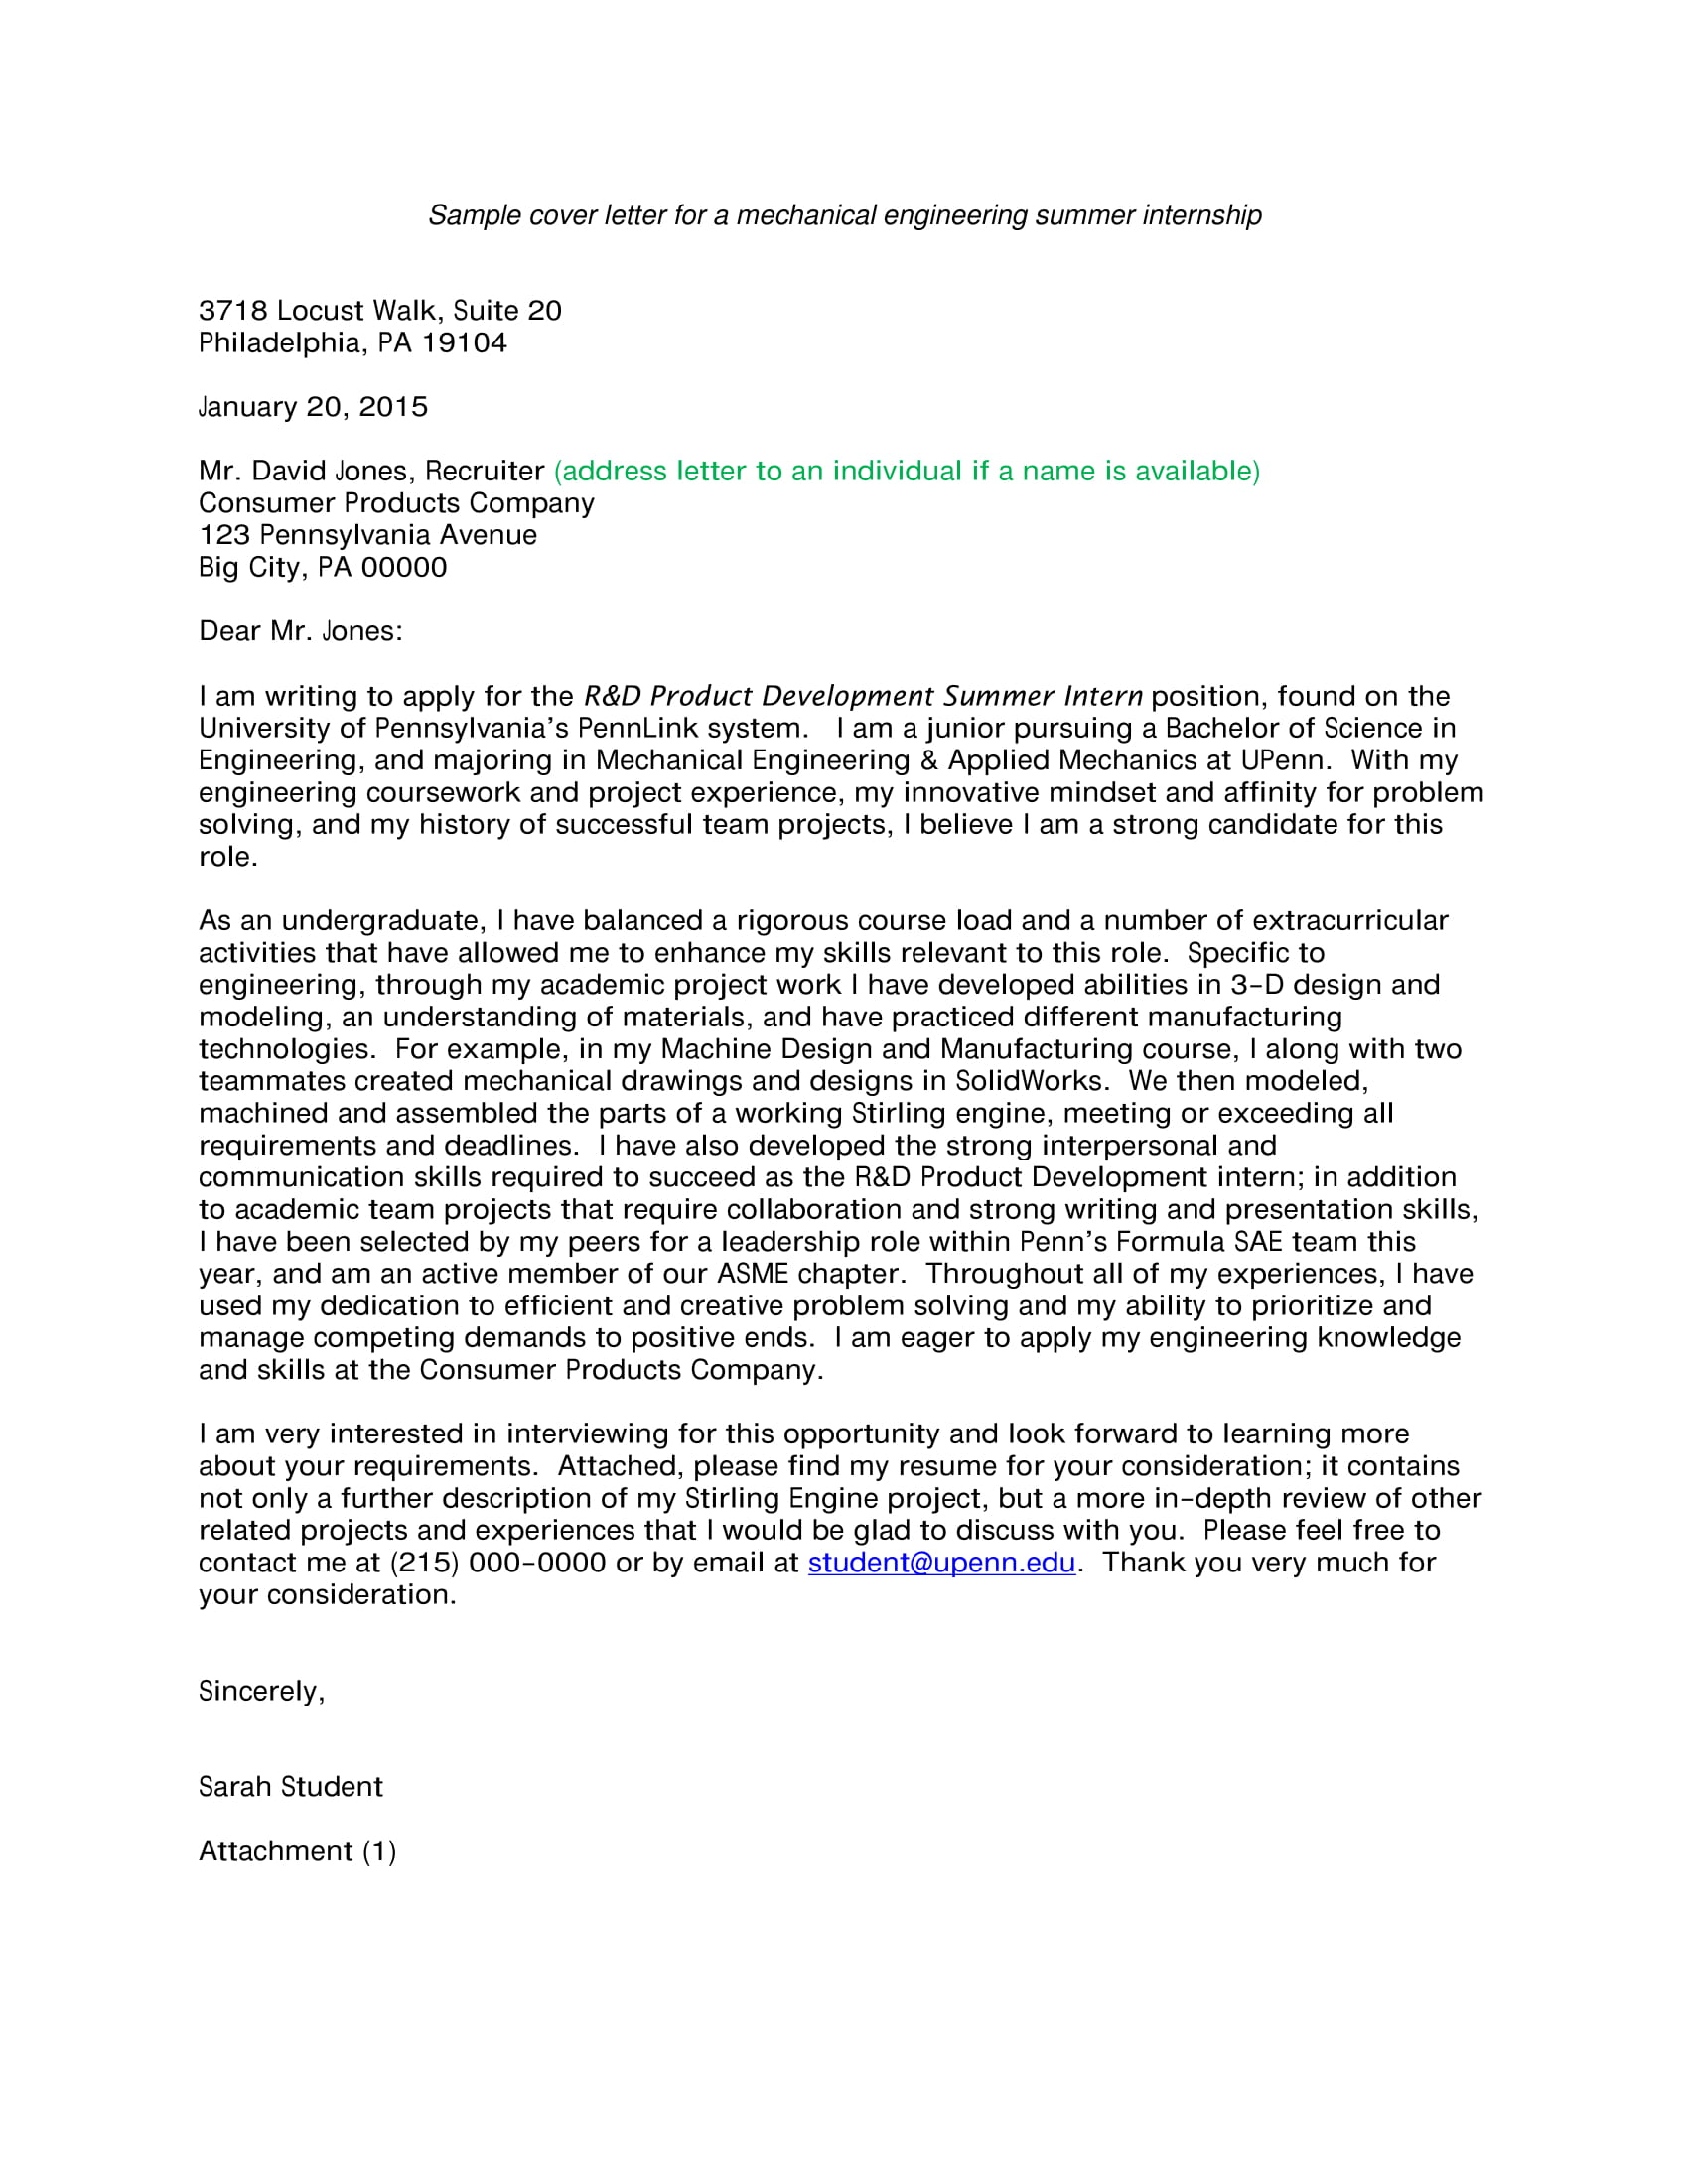 internship cover letter software engineer 7 internship cover letter examples pdf examples 22197 | Engineering Sample Internship cover letter 1